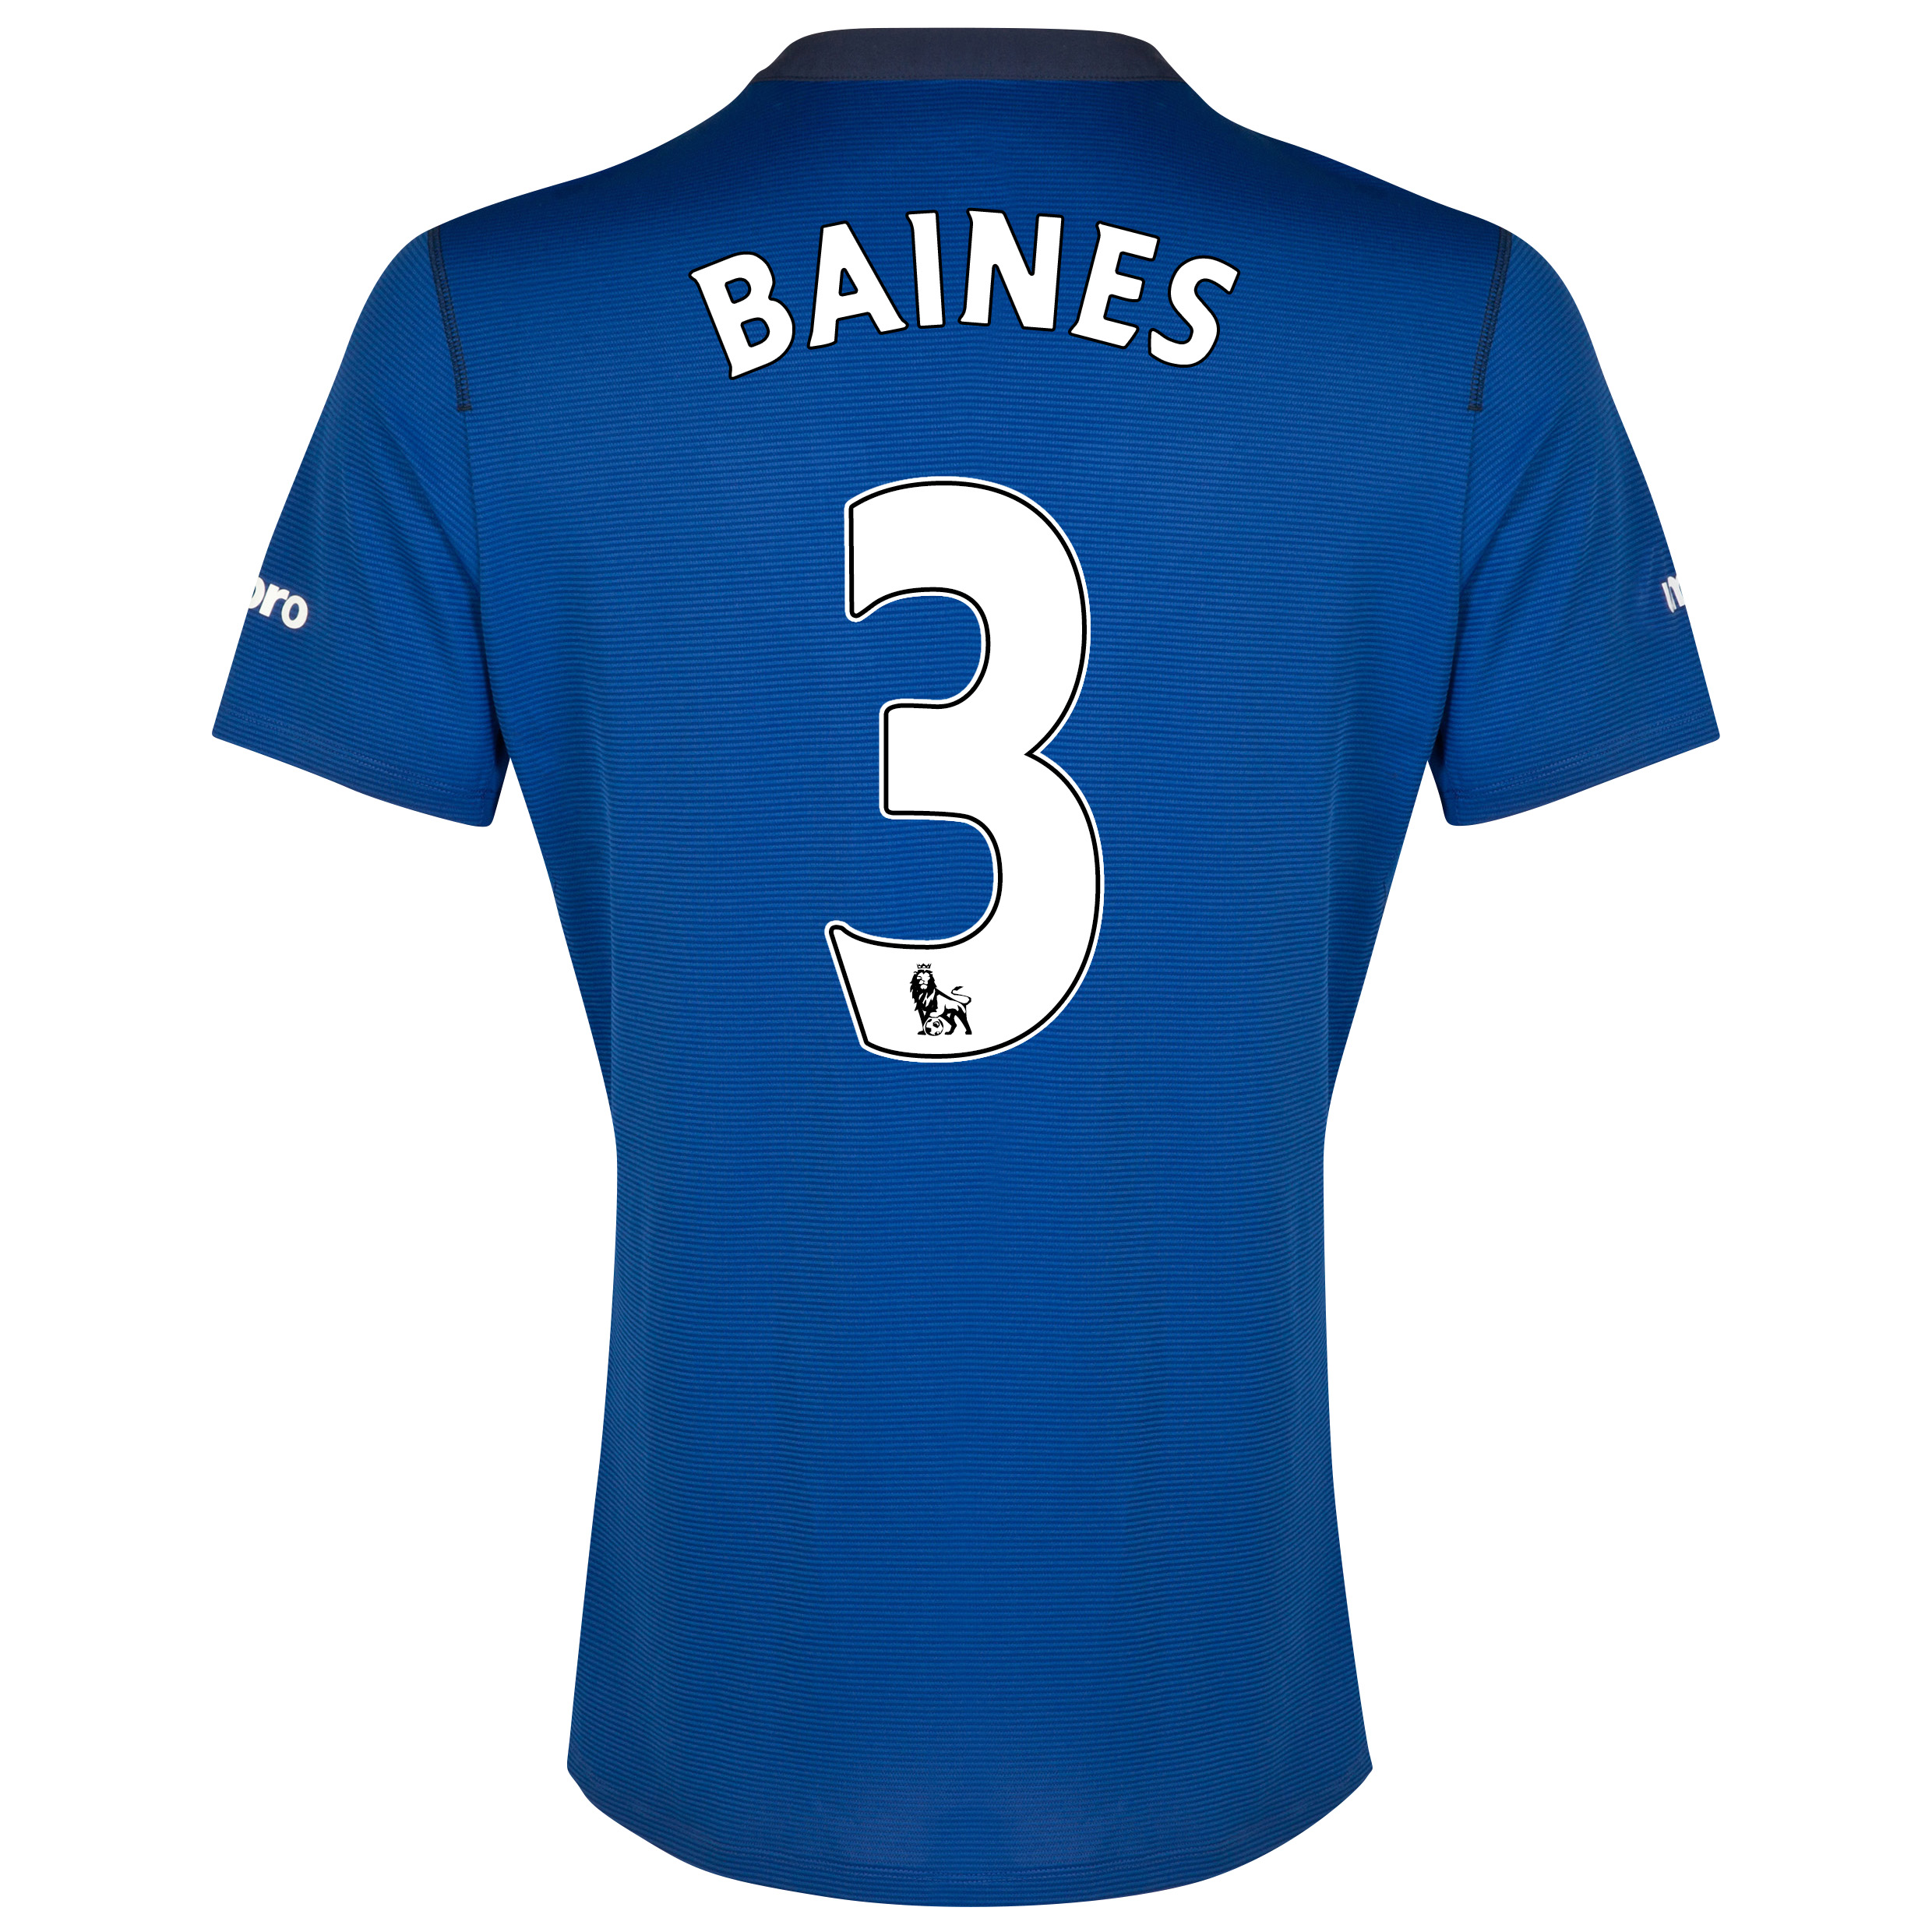 Everton SS Home Shirt 2014/15 with Baines 3 printing